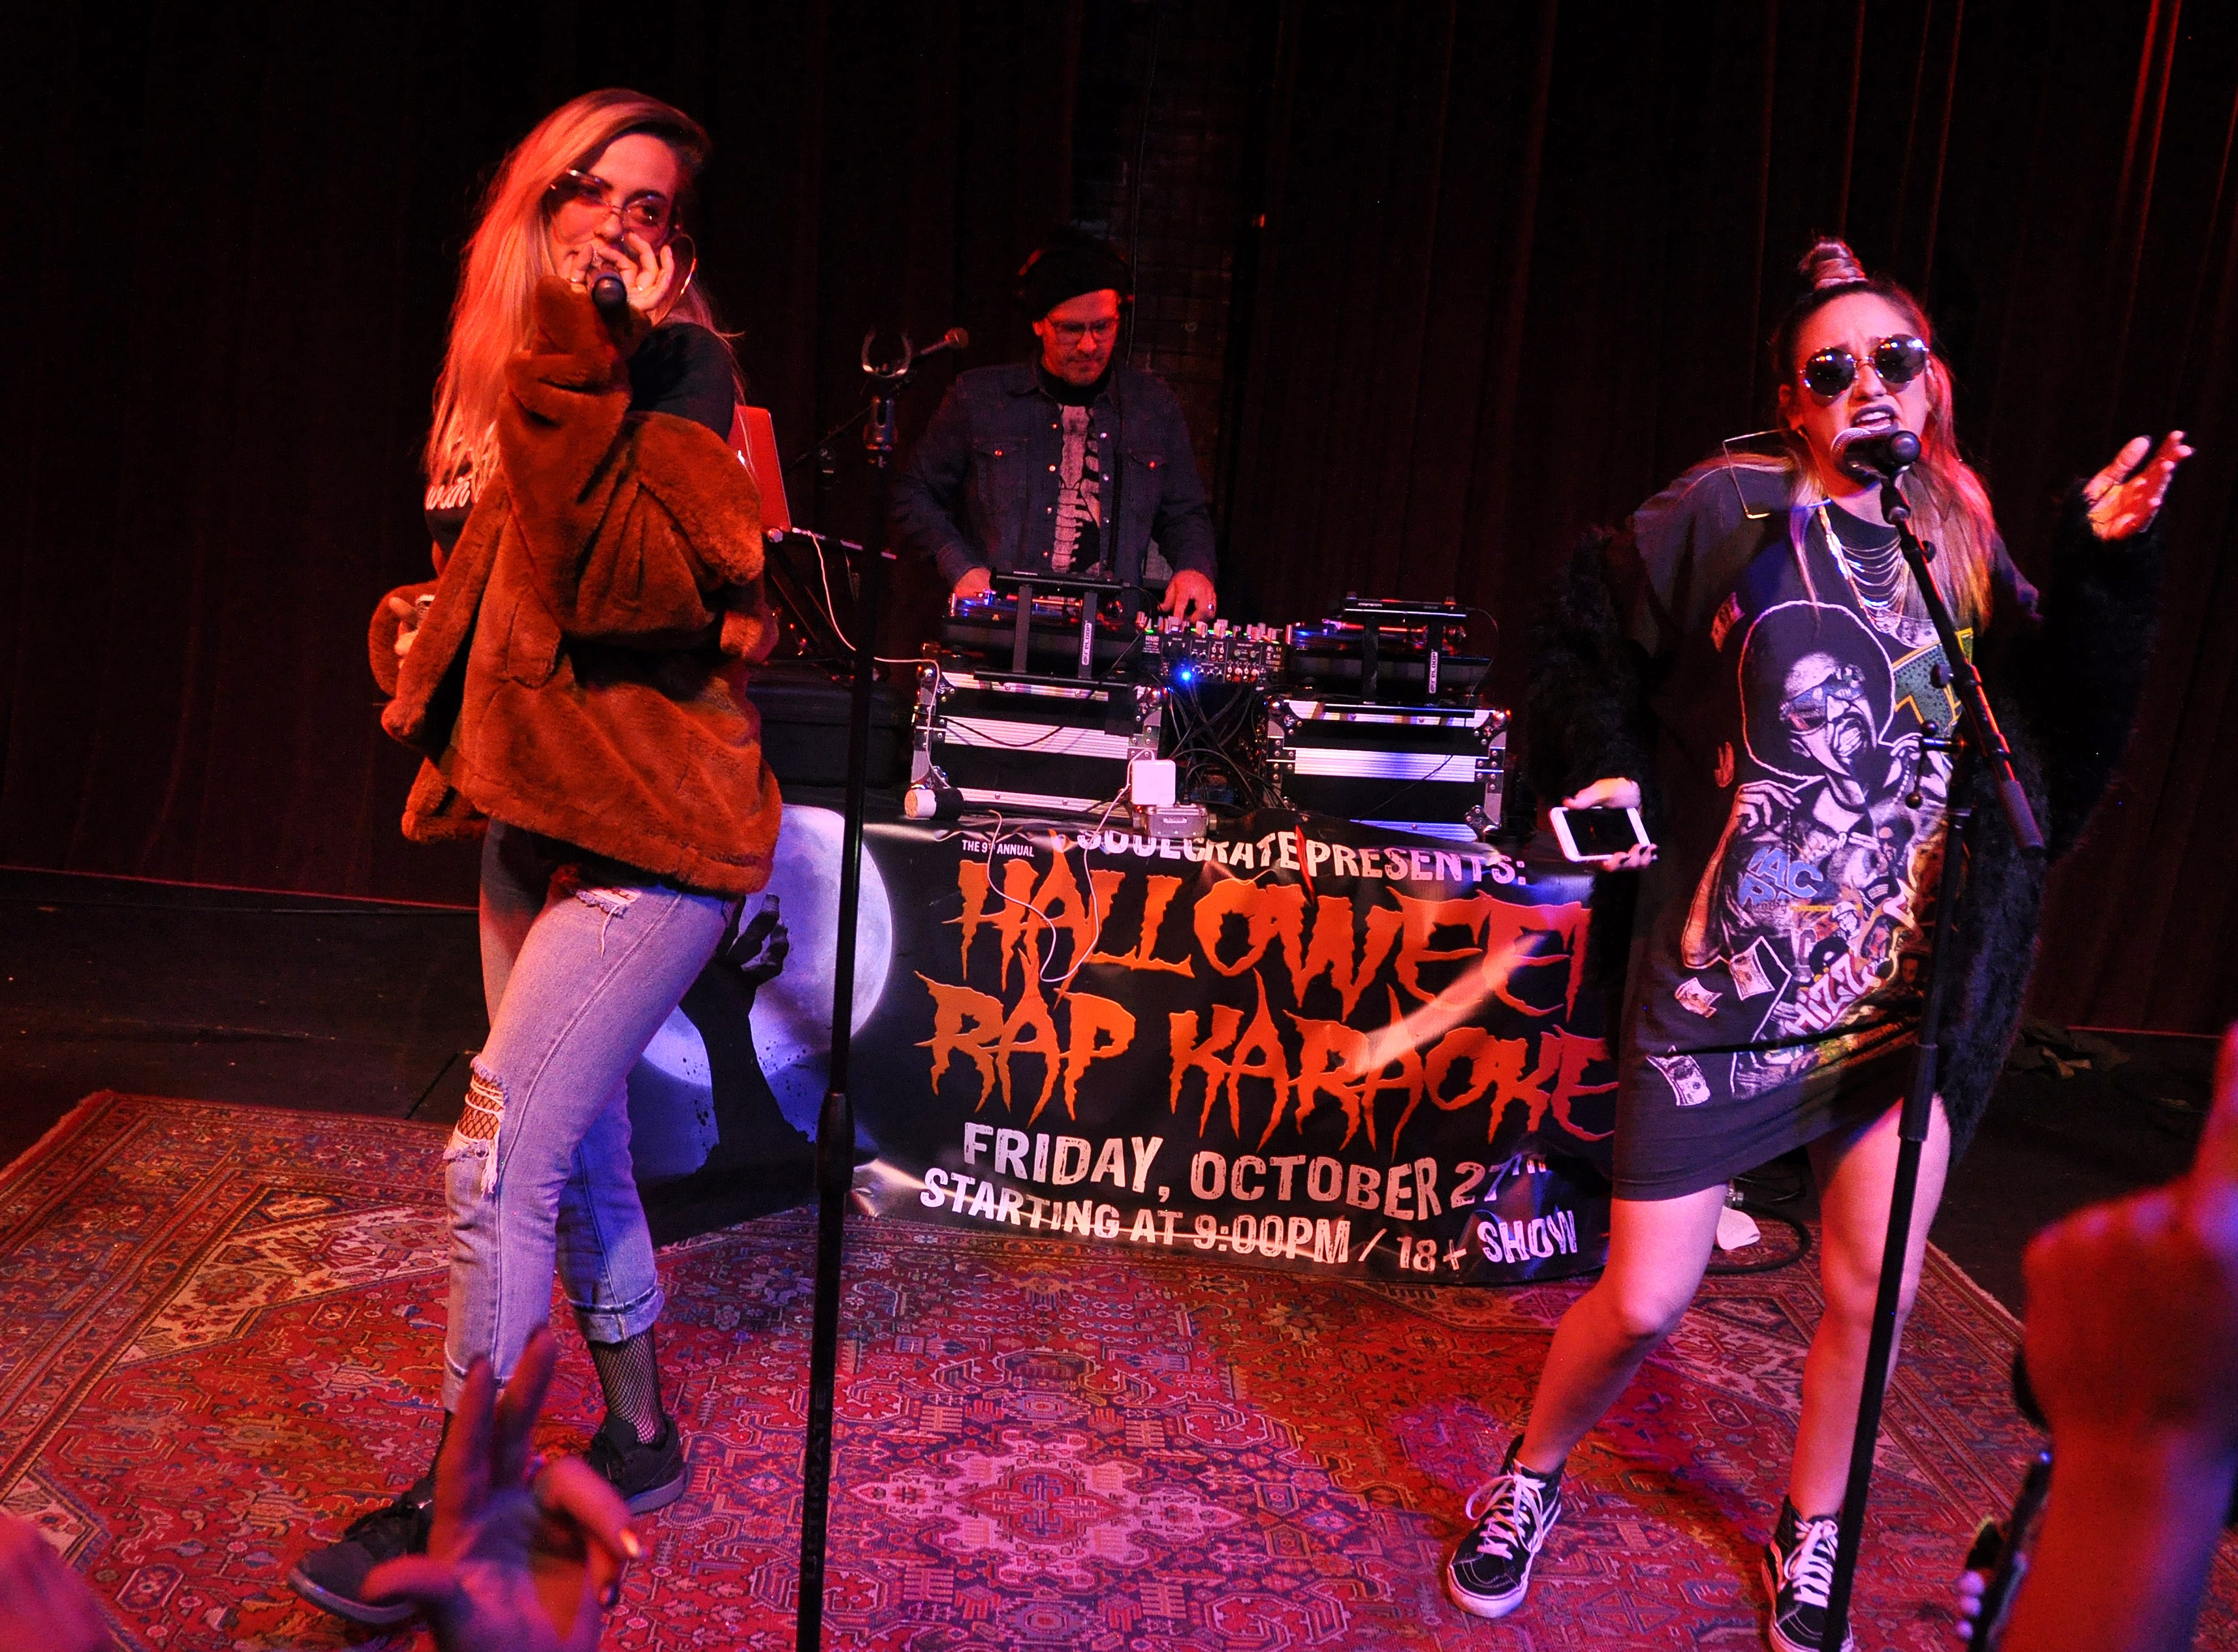 Taylor Weiland, right, and Allyson Fordyce perform at the 10th Annual Halloween Rap Karaoke show at Icon Lounge Friday night. The event is was created by the Sioux Falls band Soulcrate.